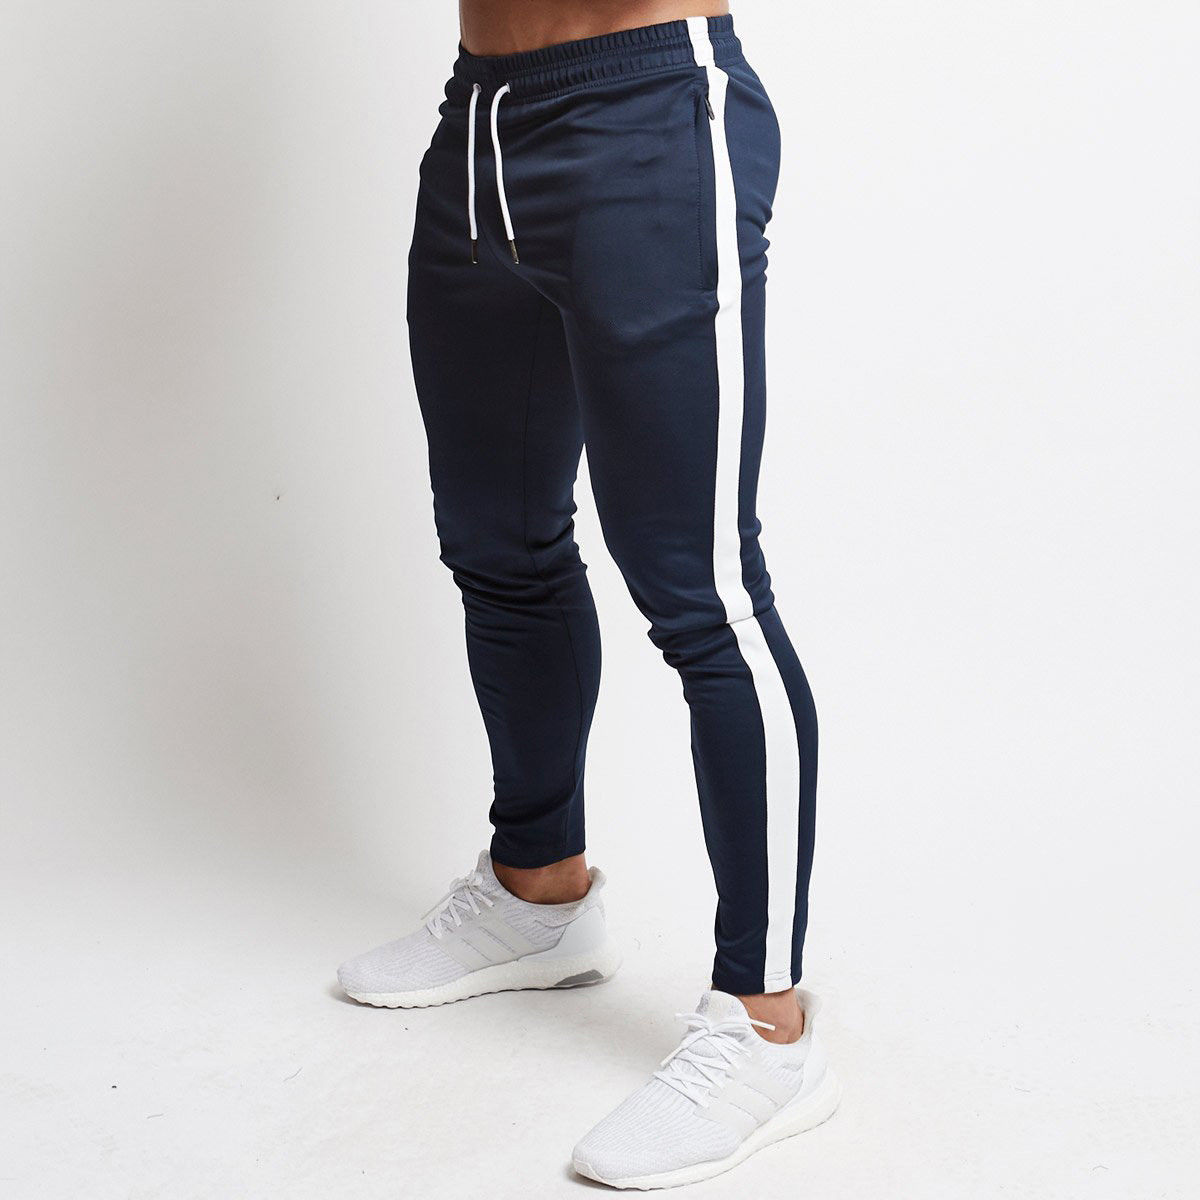 Autumn Mens Pants Casual Sweatpants Joggers Long Trousers For Men Slim Solid Color Workout Pants Male 2018 Brand New 3XL